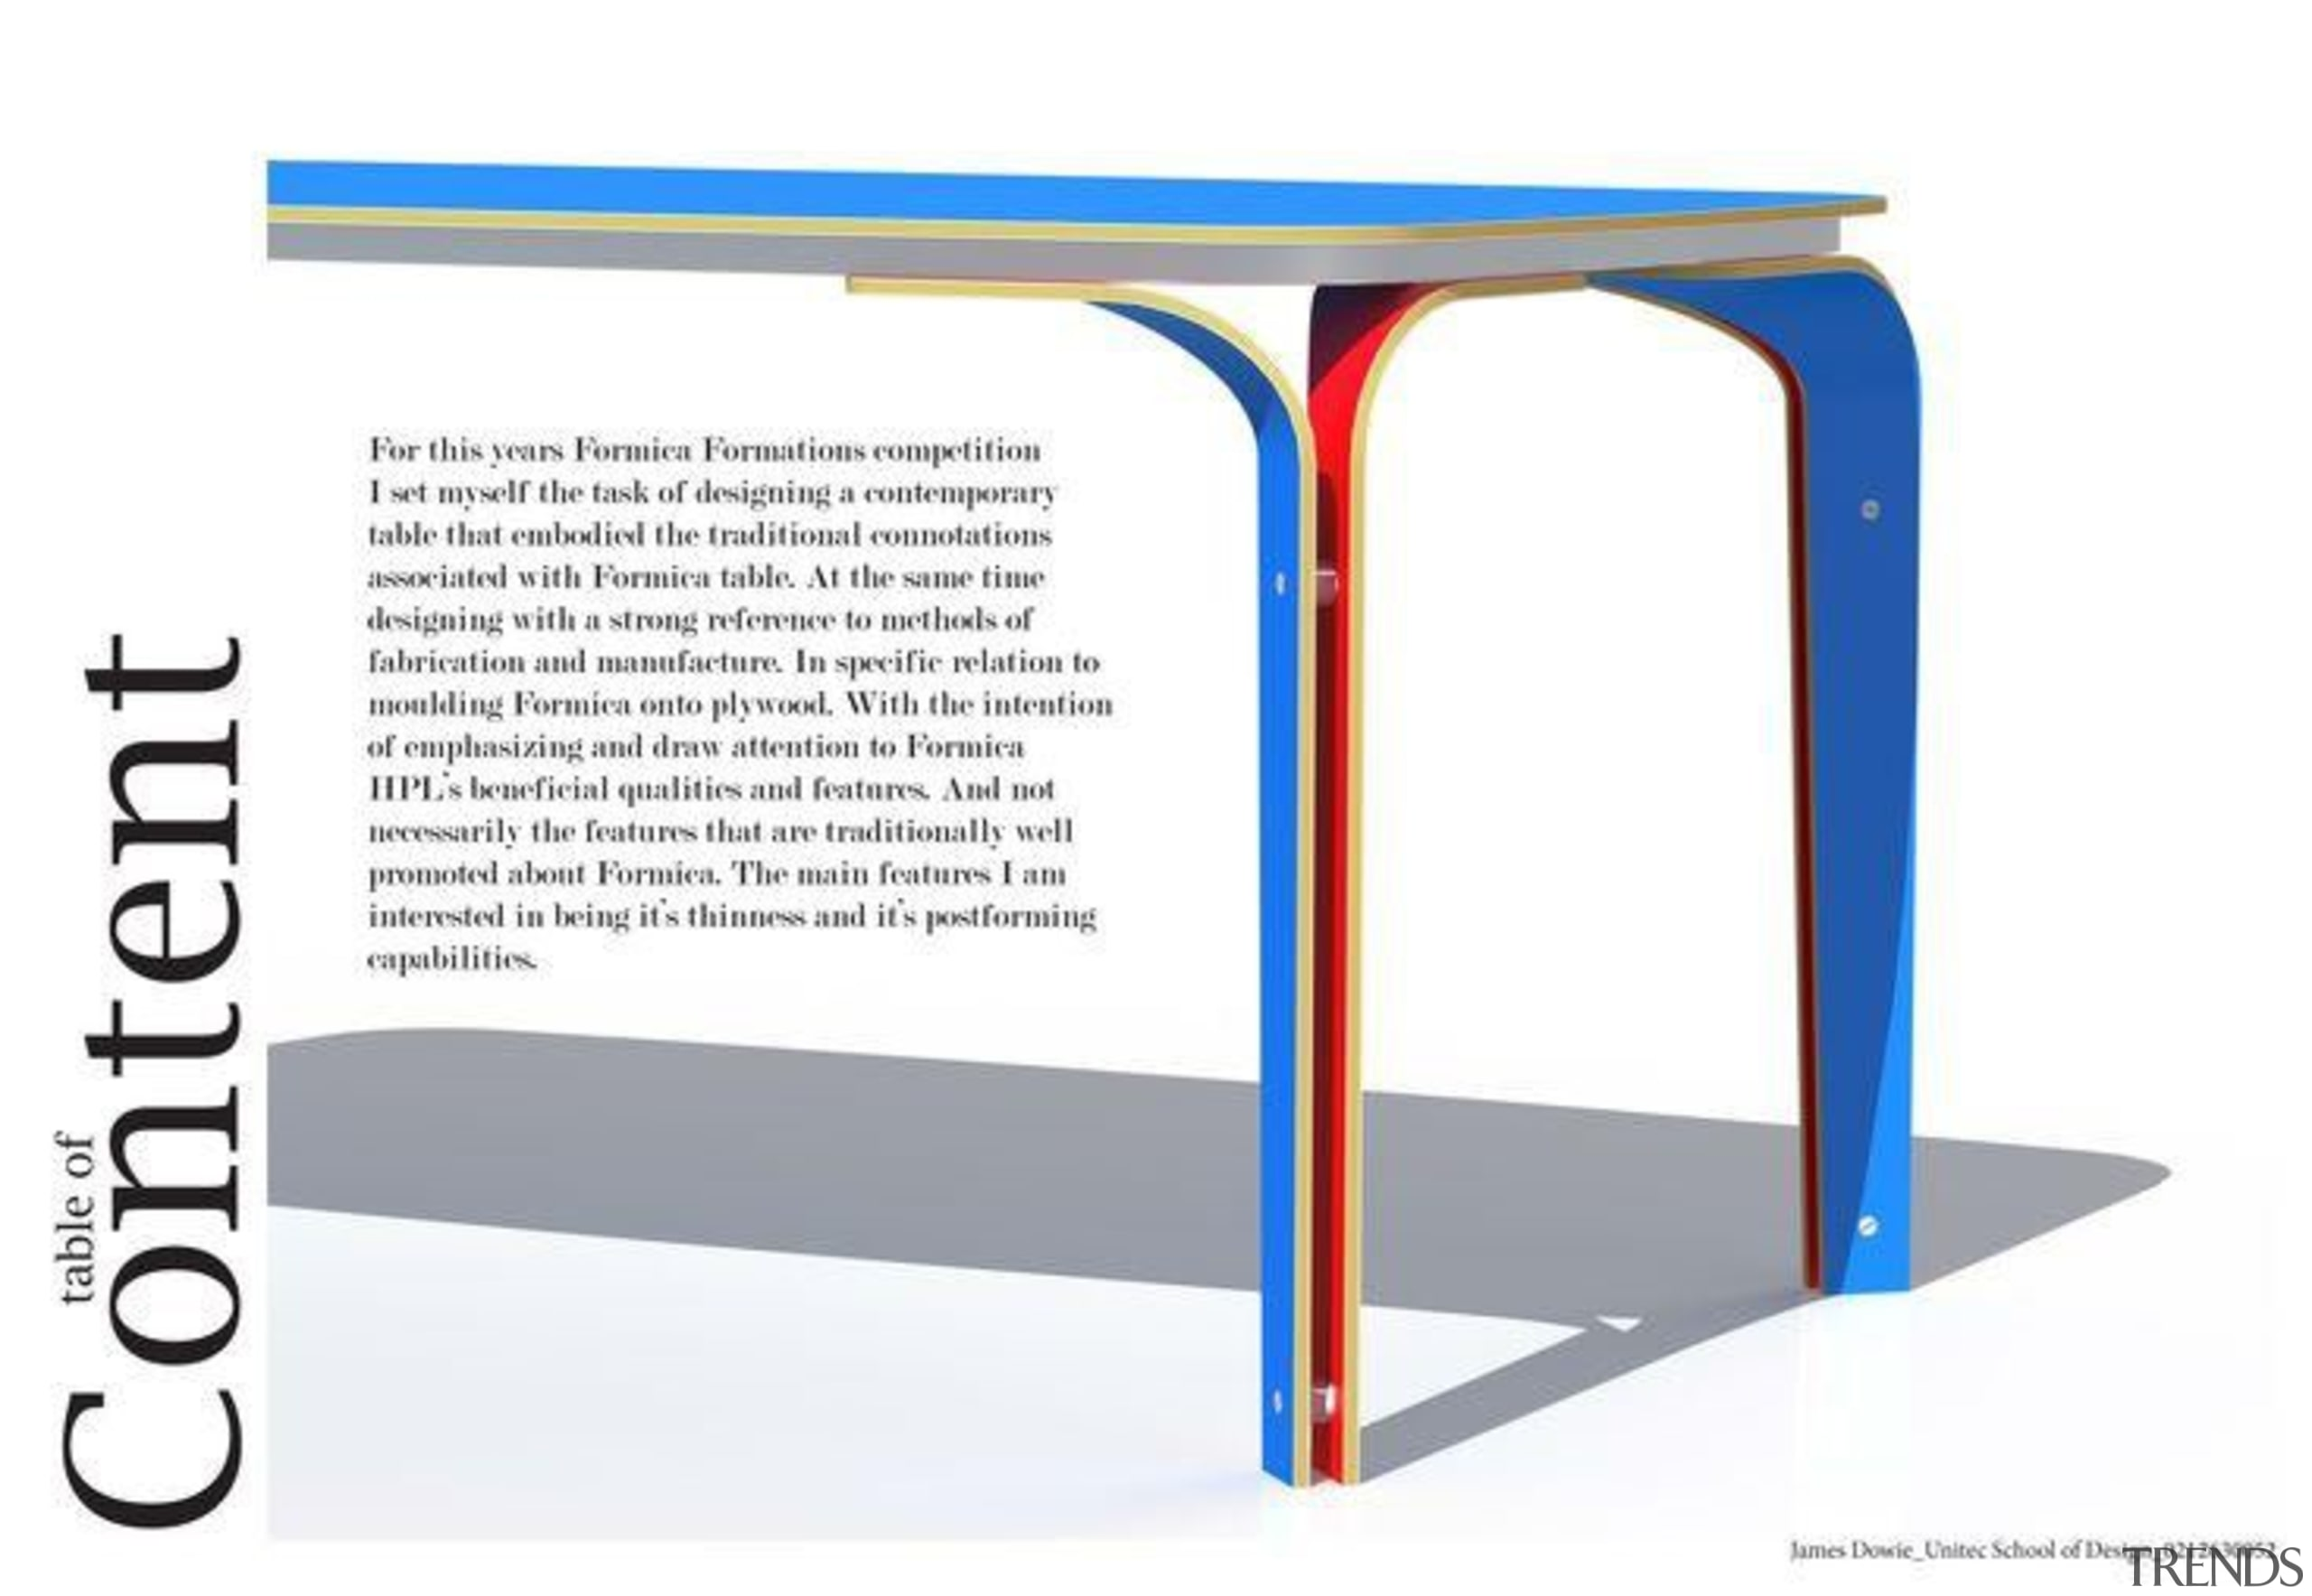 James Dowie - 1st Runner Up, Emerging Category angle, design, font, furniture, line, product, product design, table, text, white